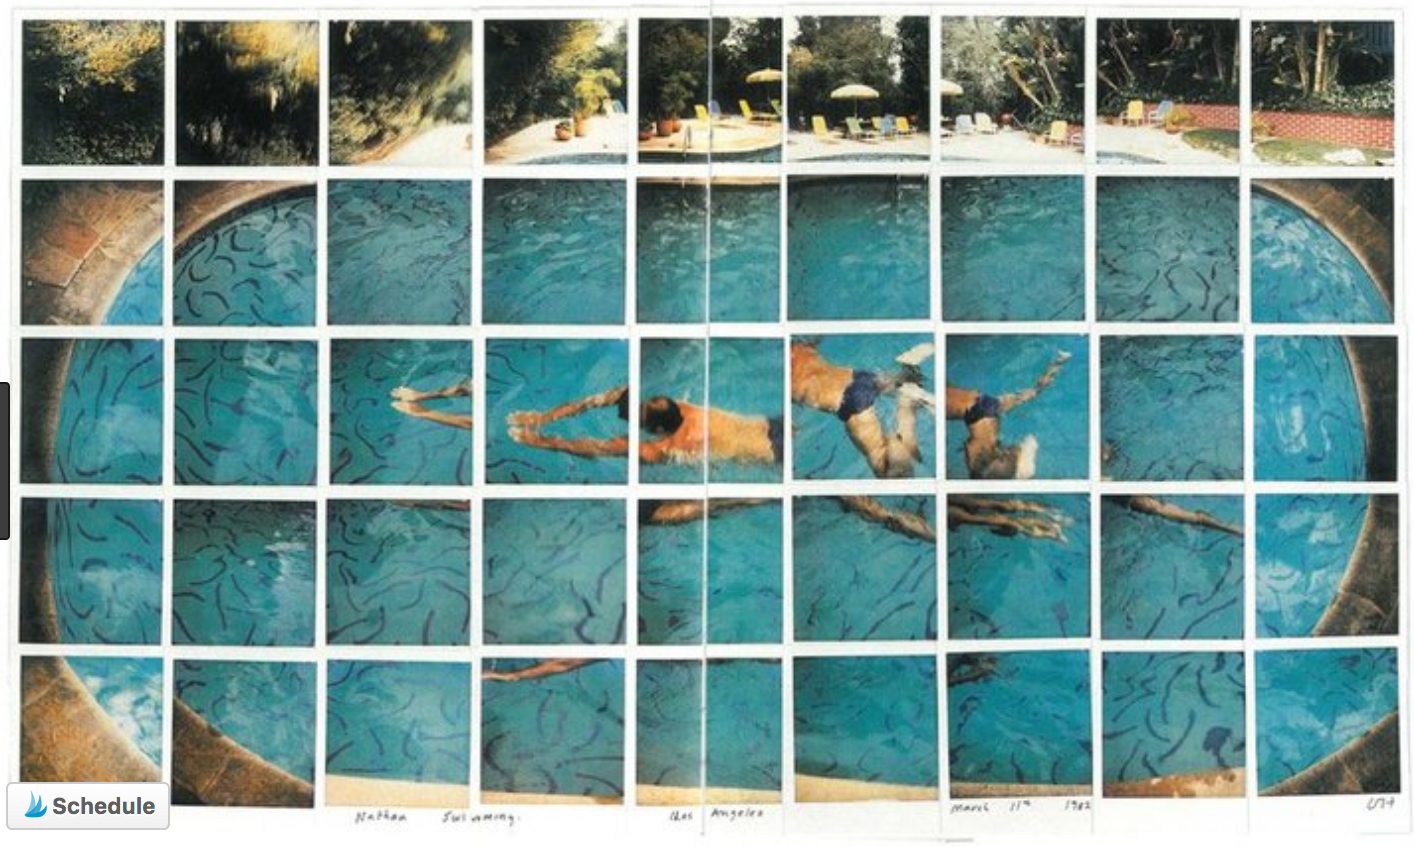 Nathan Swimming Los Angeles, by David Hockney  source: Pinterest